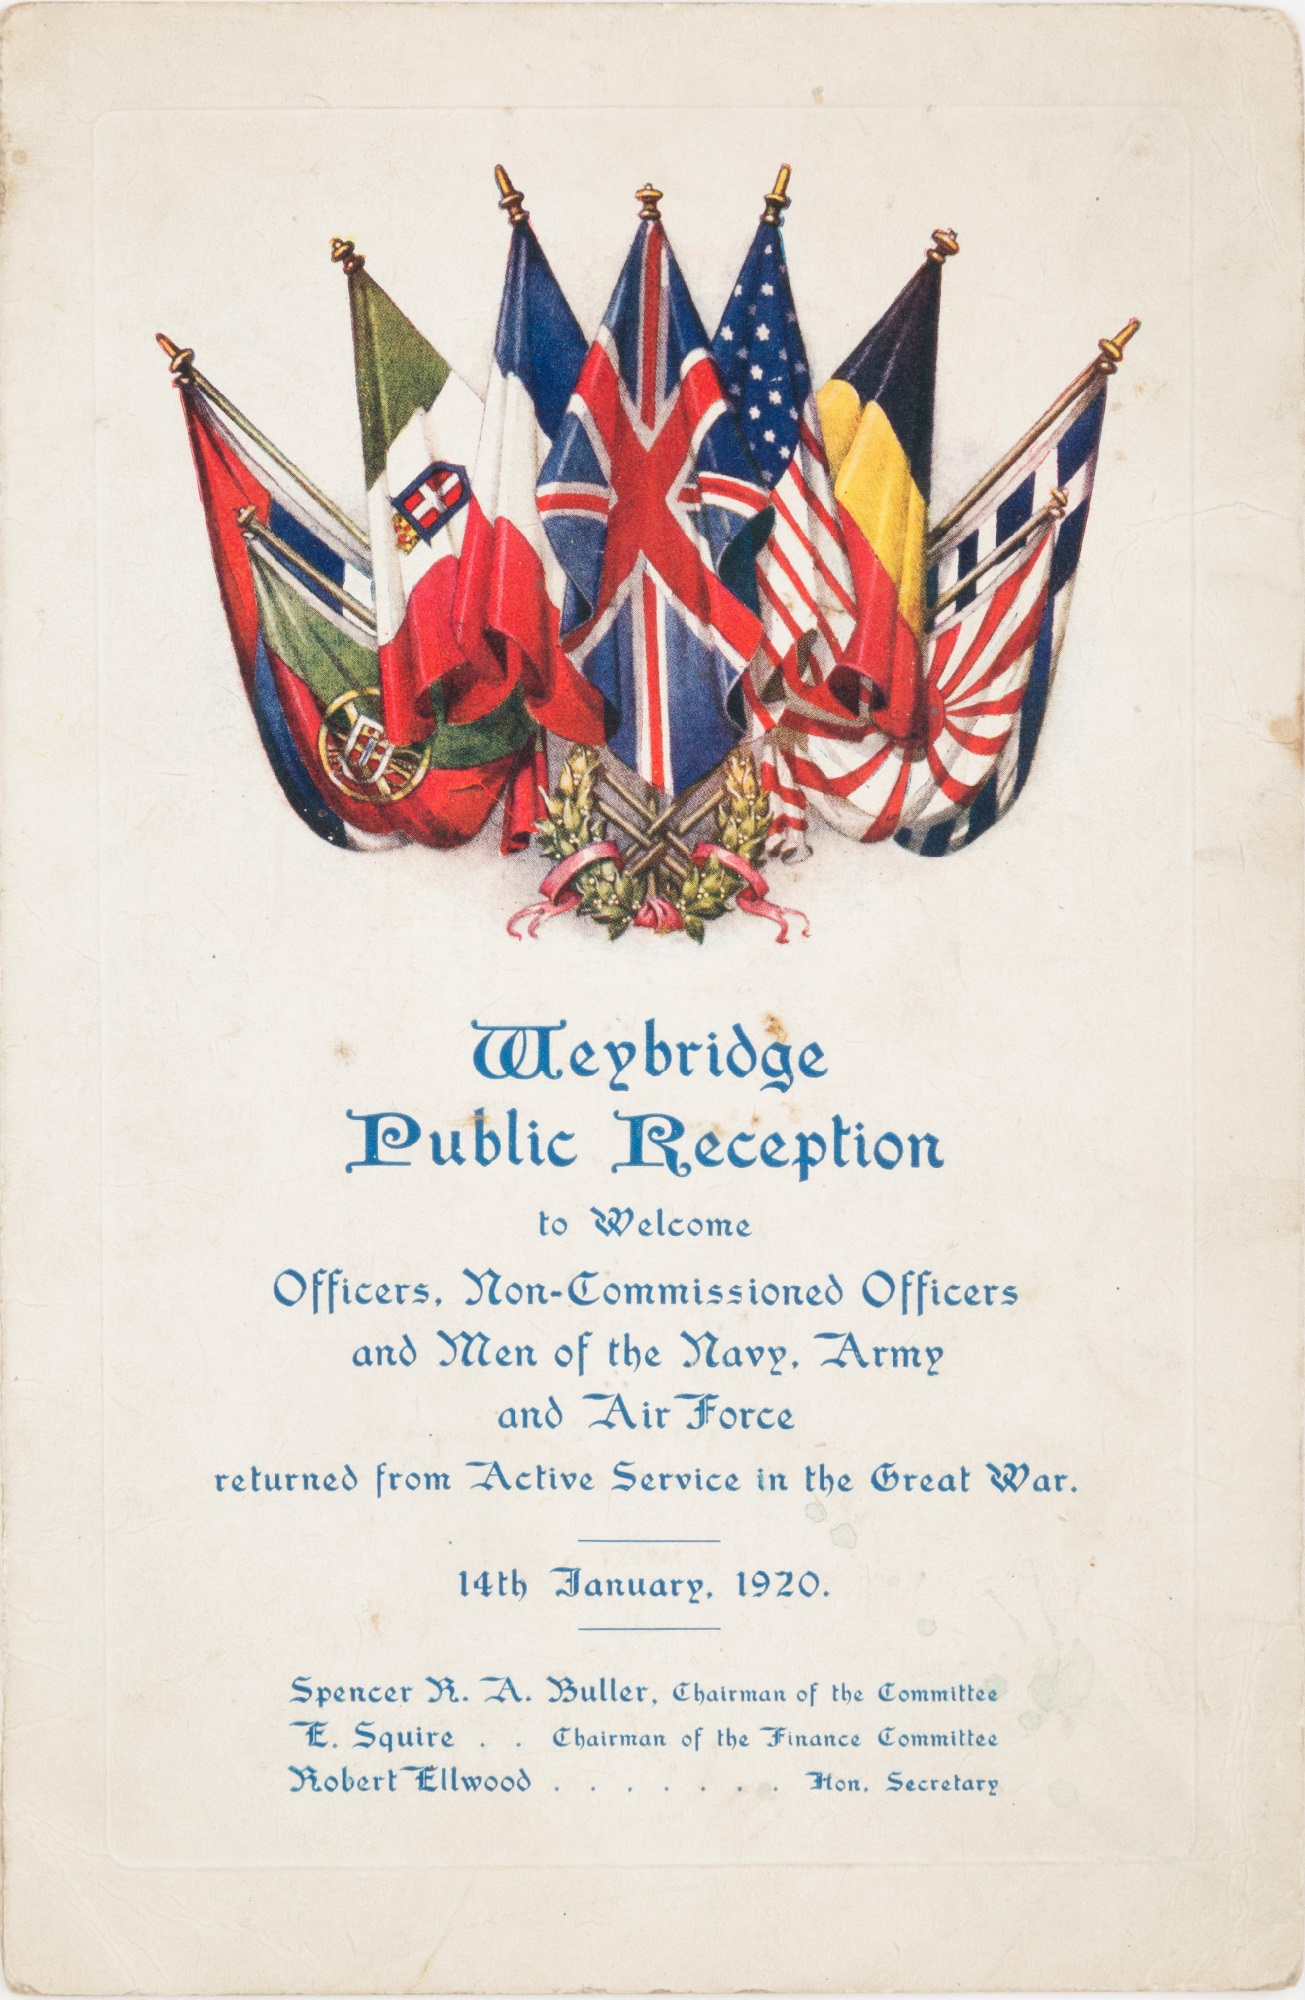 Programme for a Weybridge Public Reception dated 14th January 1914, to welcome men on active service in the Great War (1914-18). Nine flags are crossed at the top of the page, and details of the event are written in blue lettering on white card. Inside are details of the menu, programme, and the autographs collected.